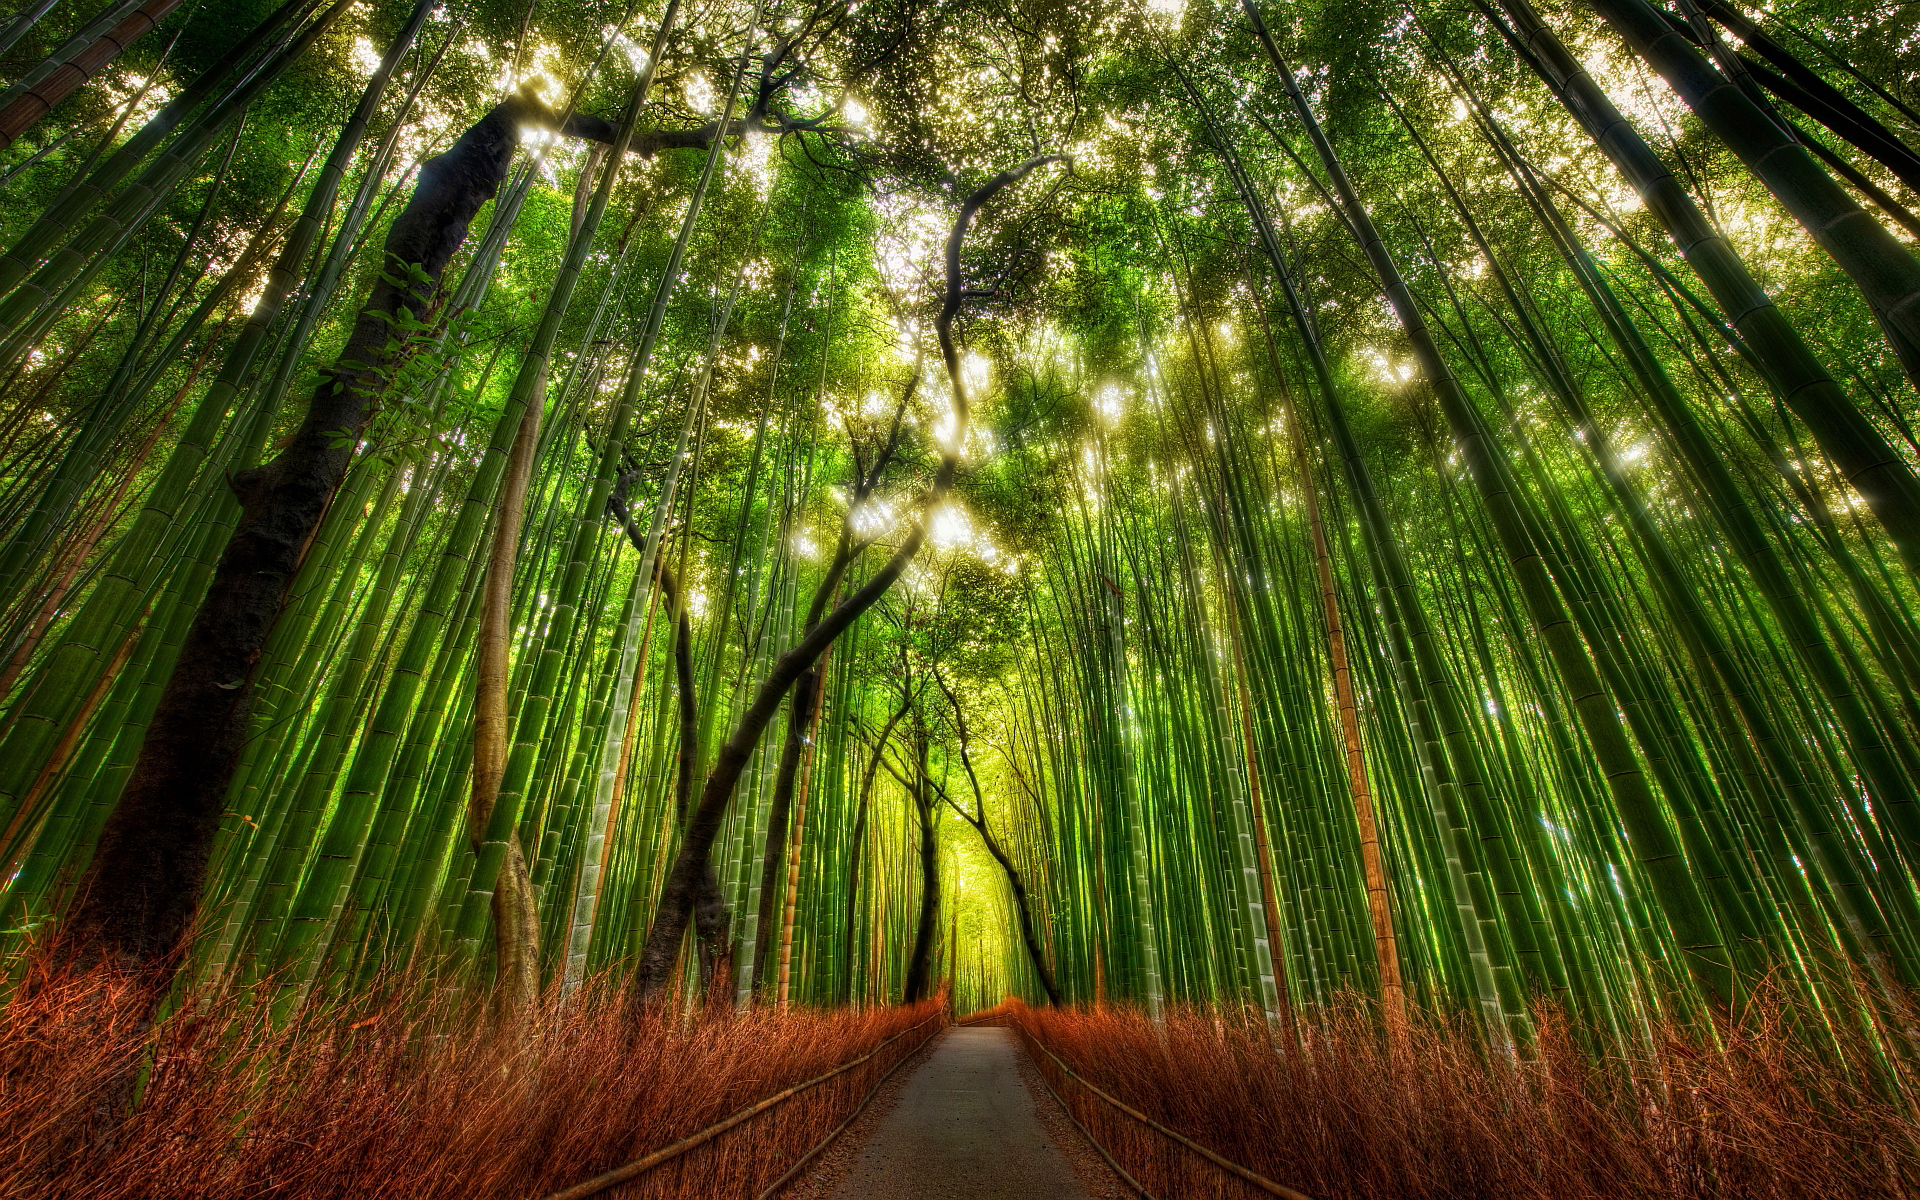 Bamboo Forest Hd Desktop Wallpapers 4k Hd